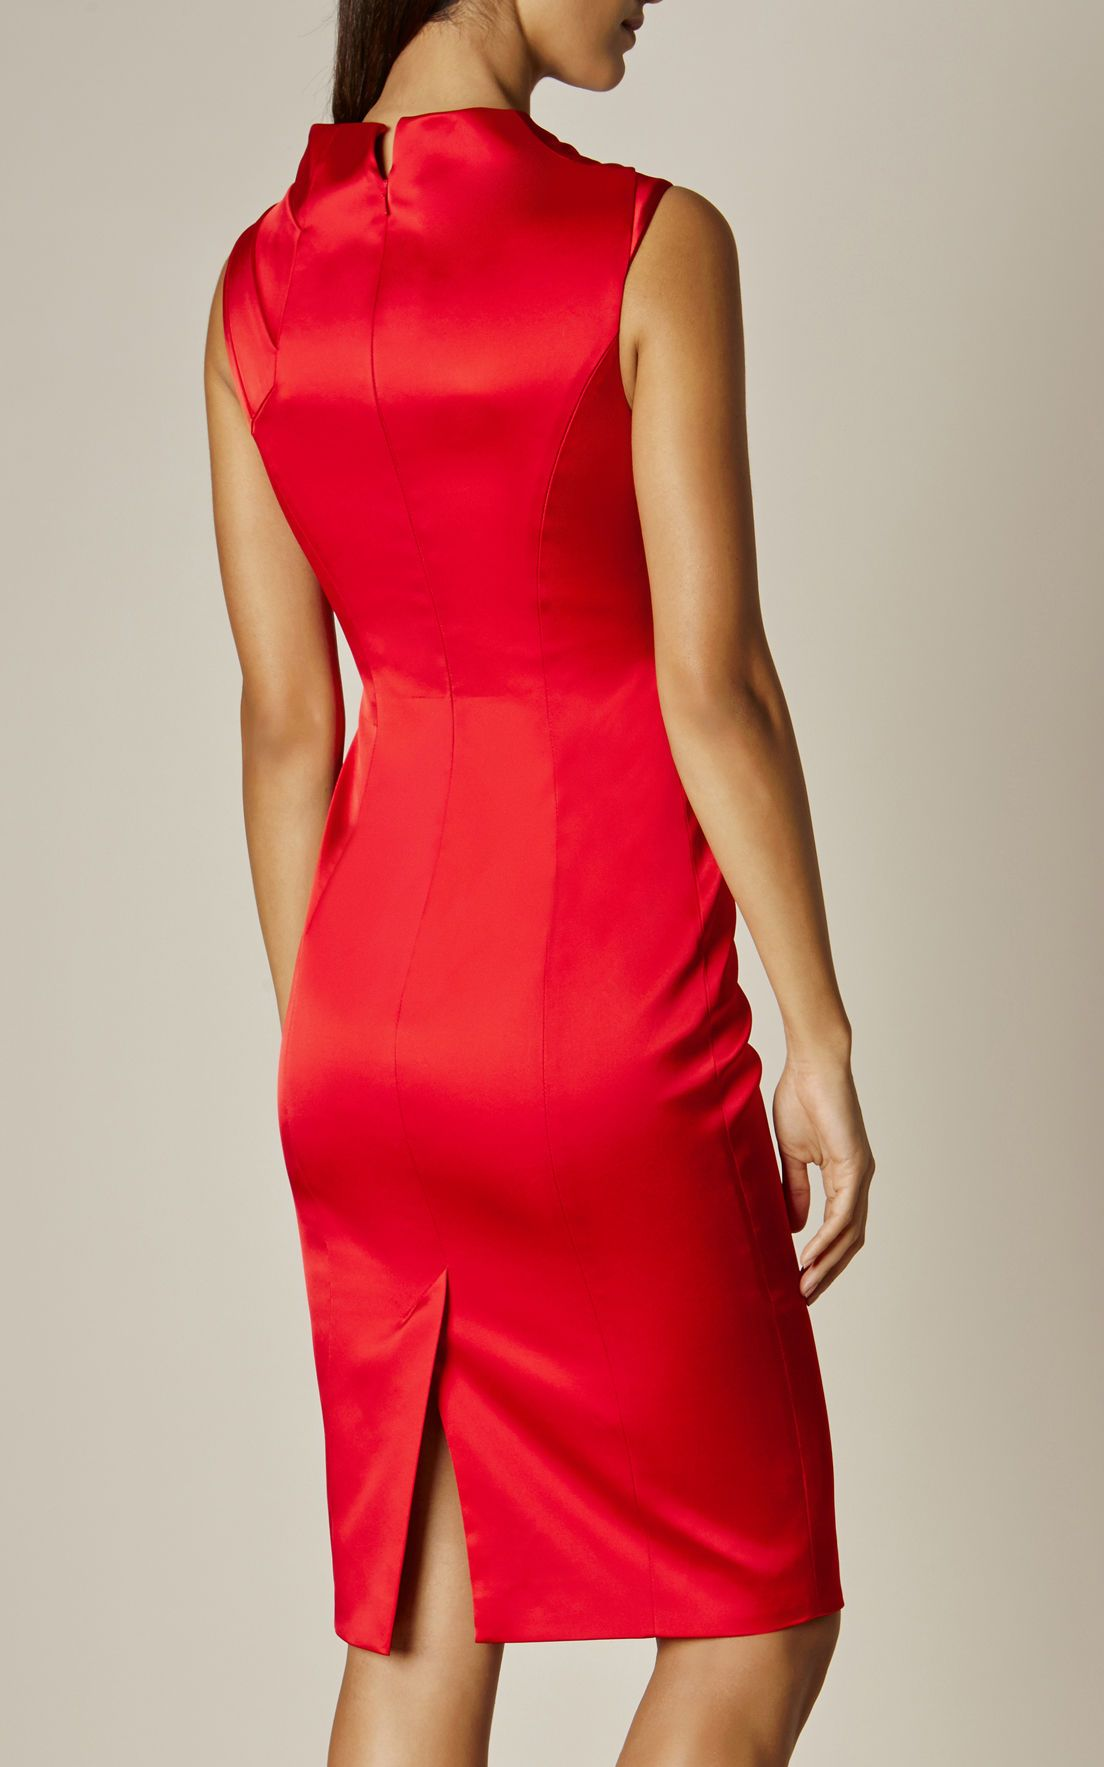 3a9c36bcd64f Karen Millen, Fold-detail Satin Dress Red | km | Dresses, Satin ...